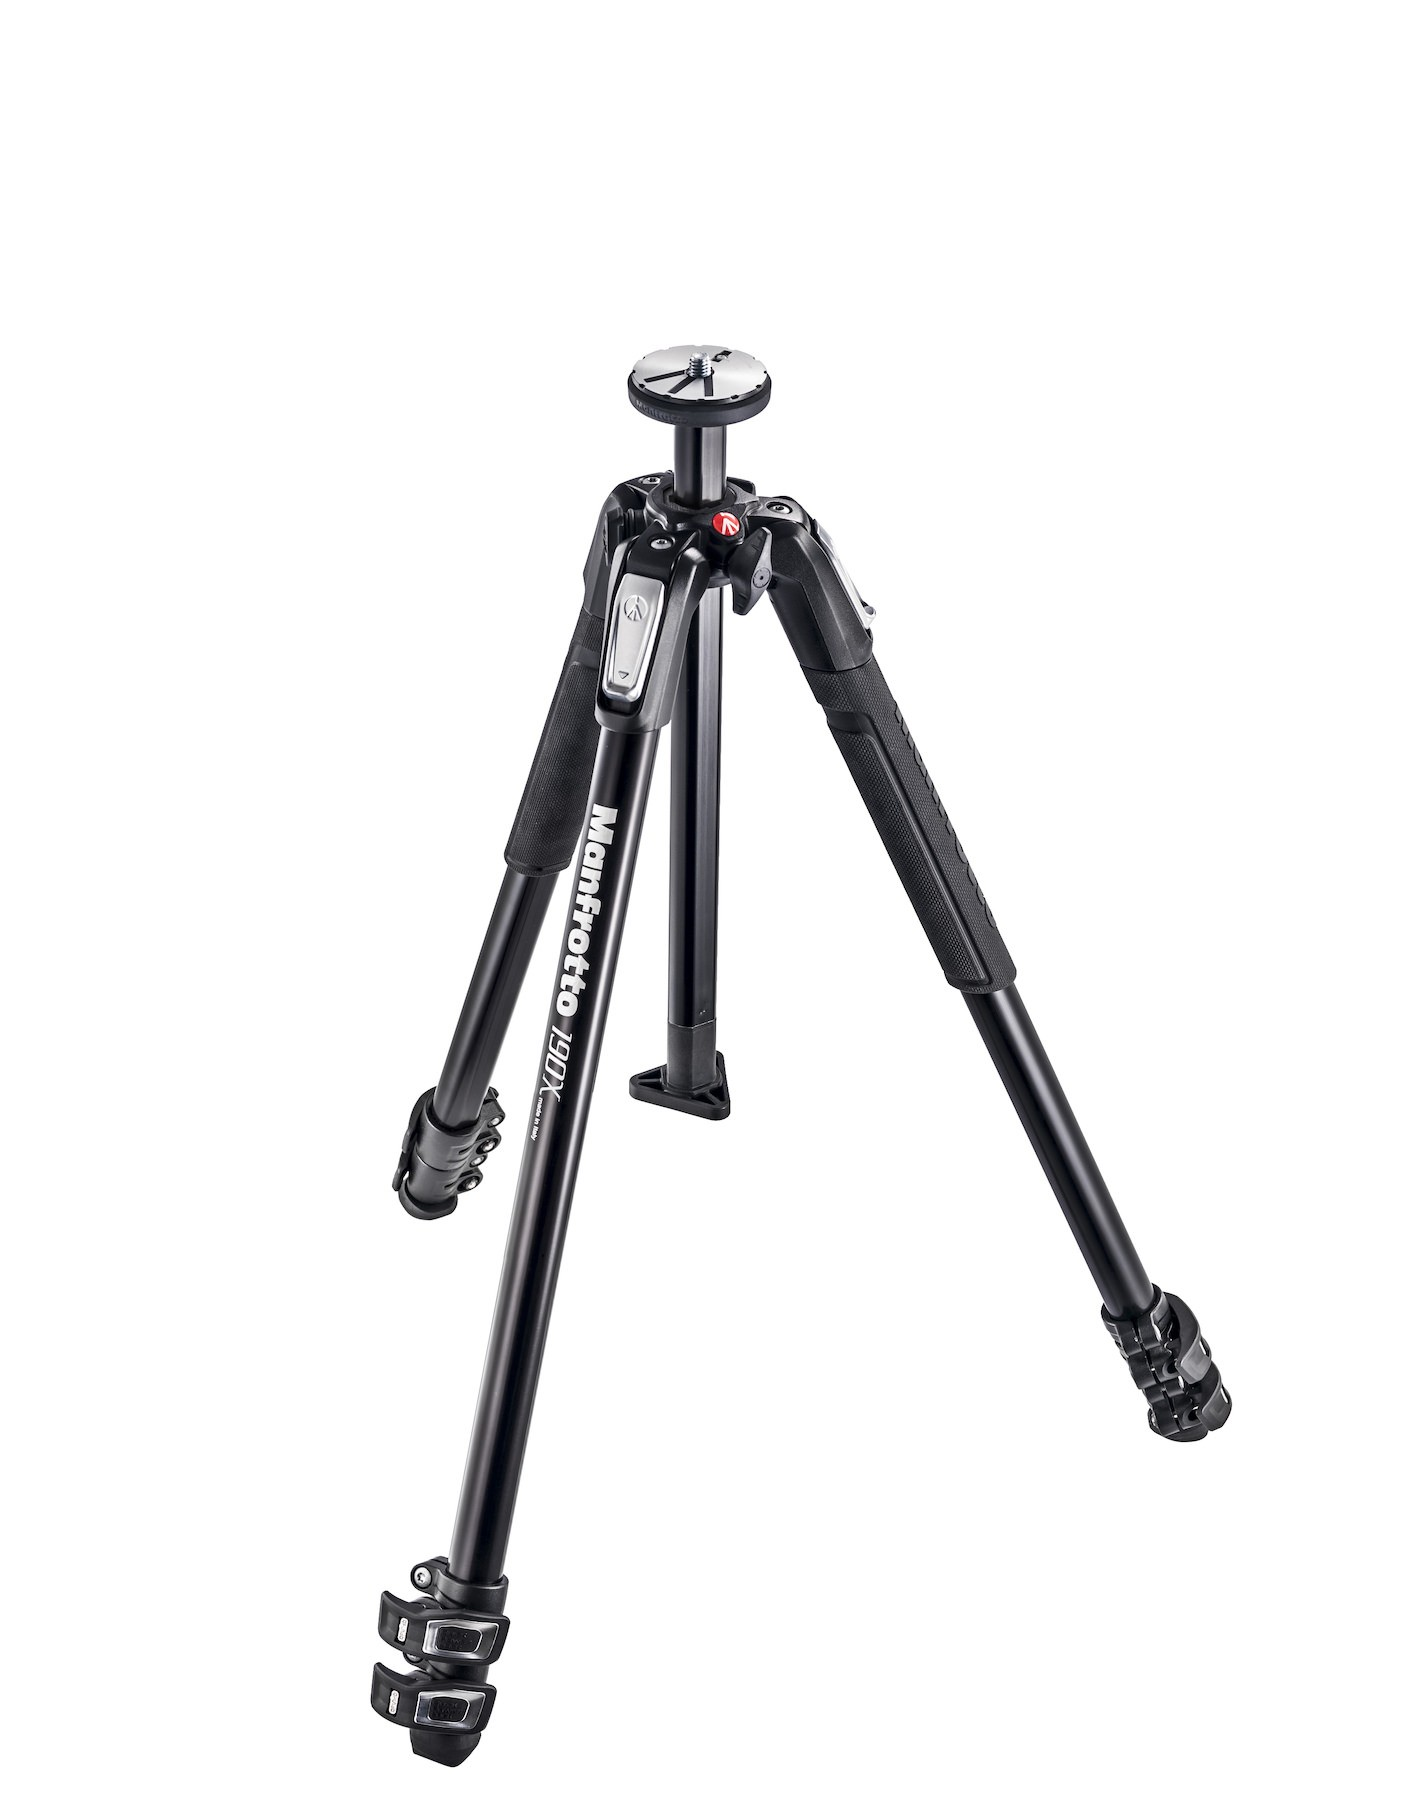 190X Aluminium 3-section camera tripod